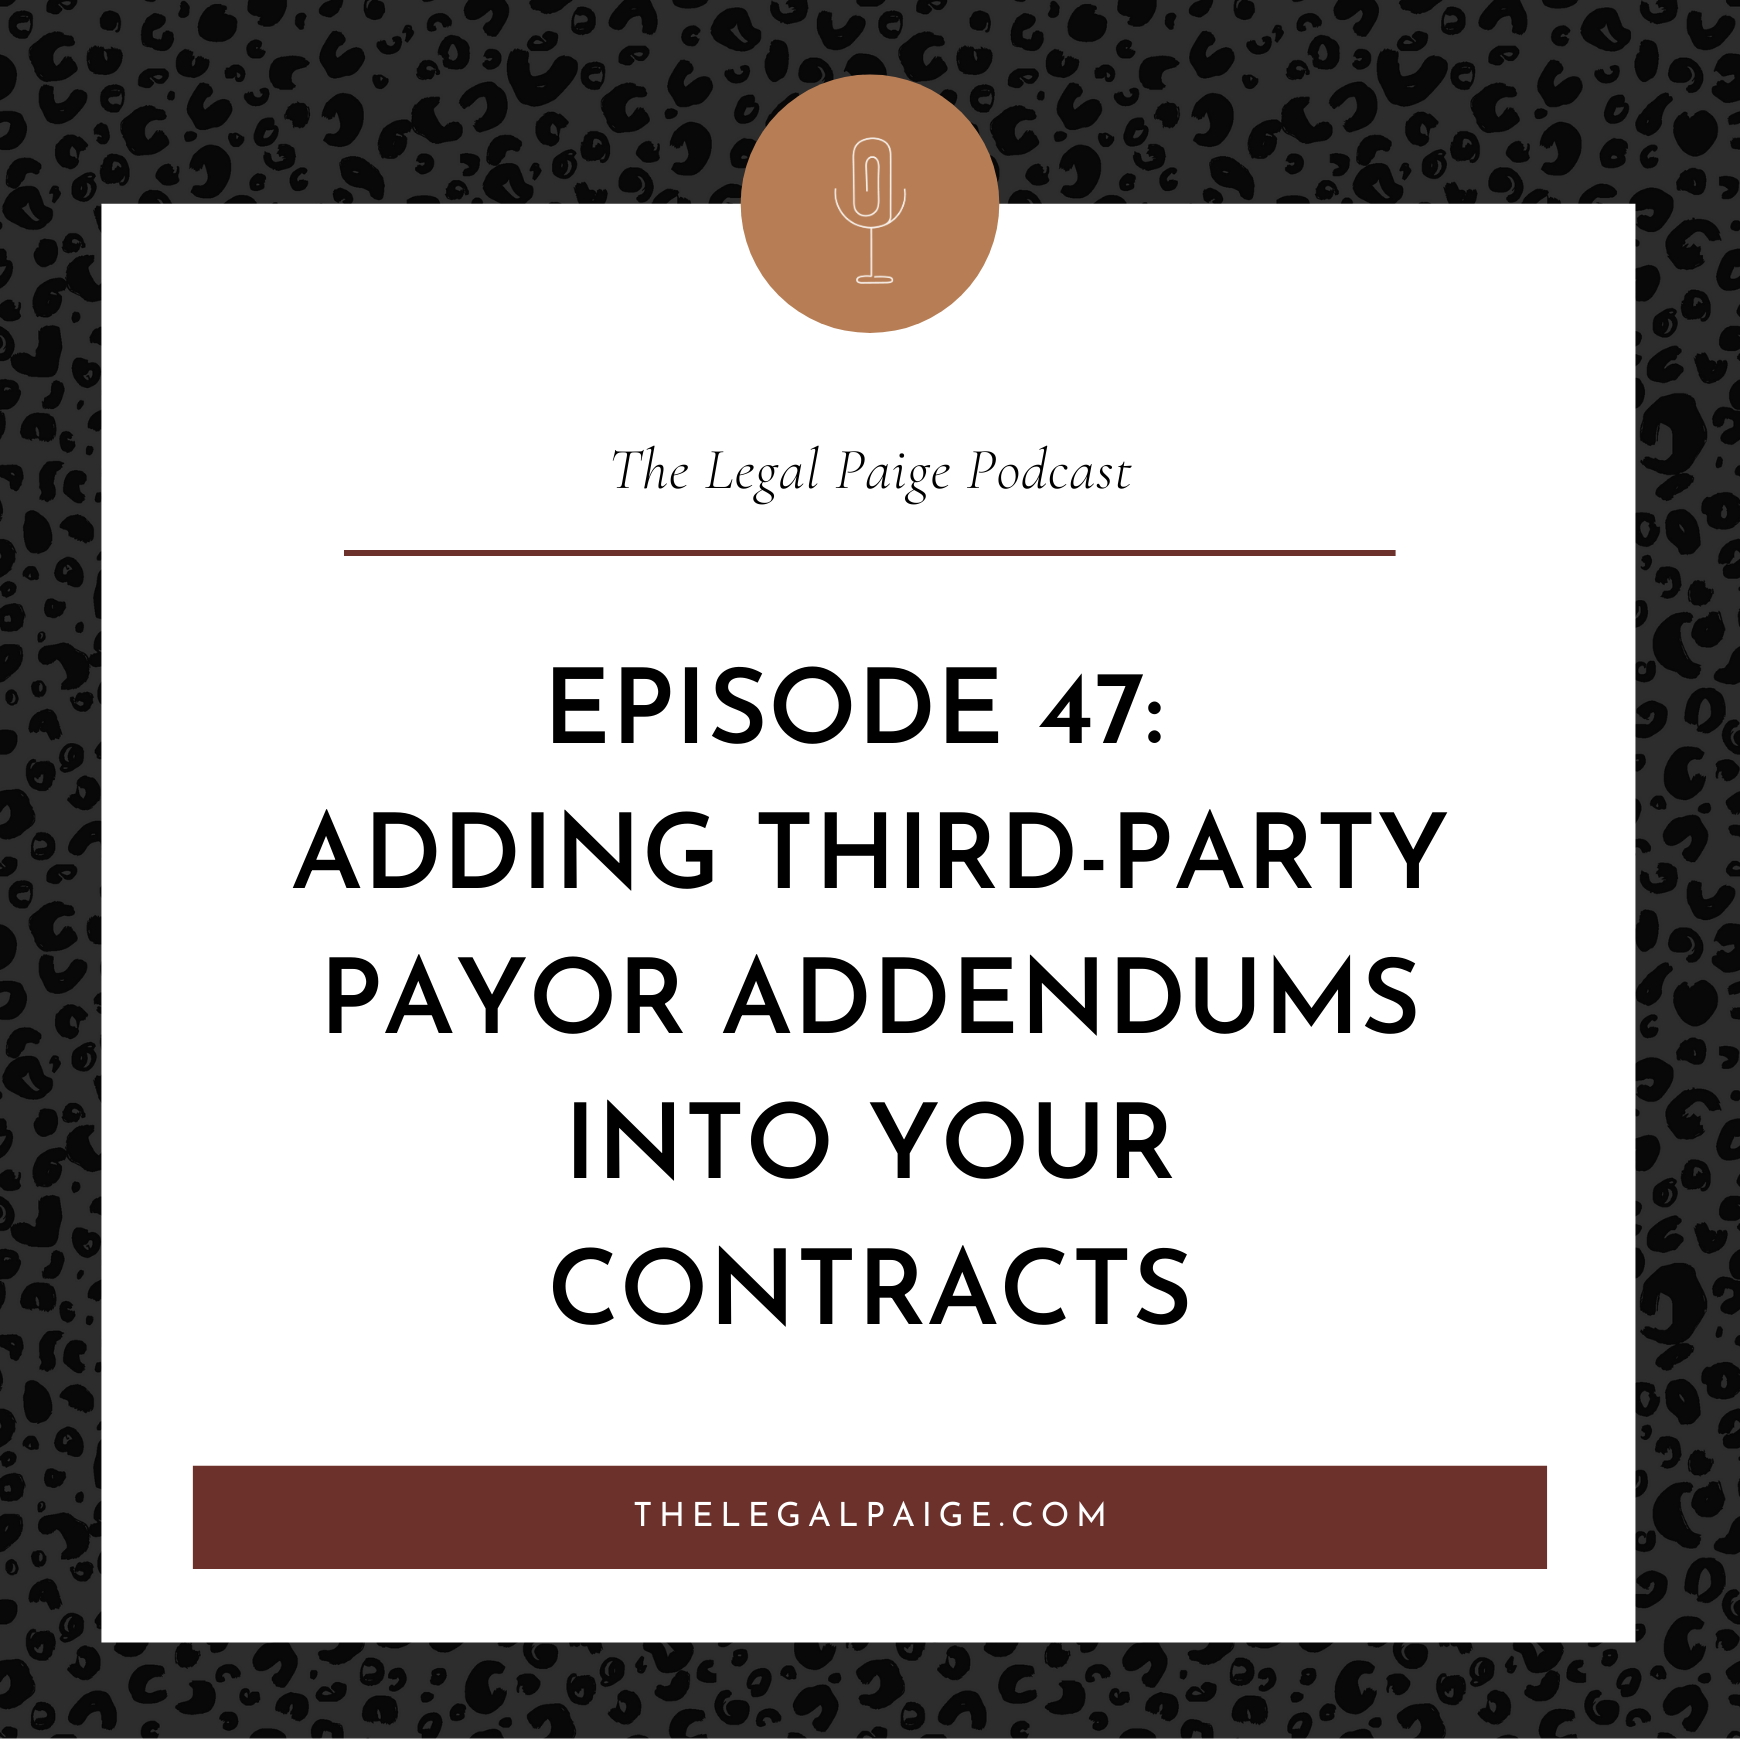 Ep 47: Adding Third-Party Payor Addendums Into Your Contracts